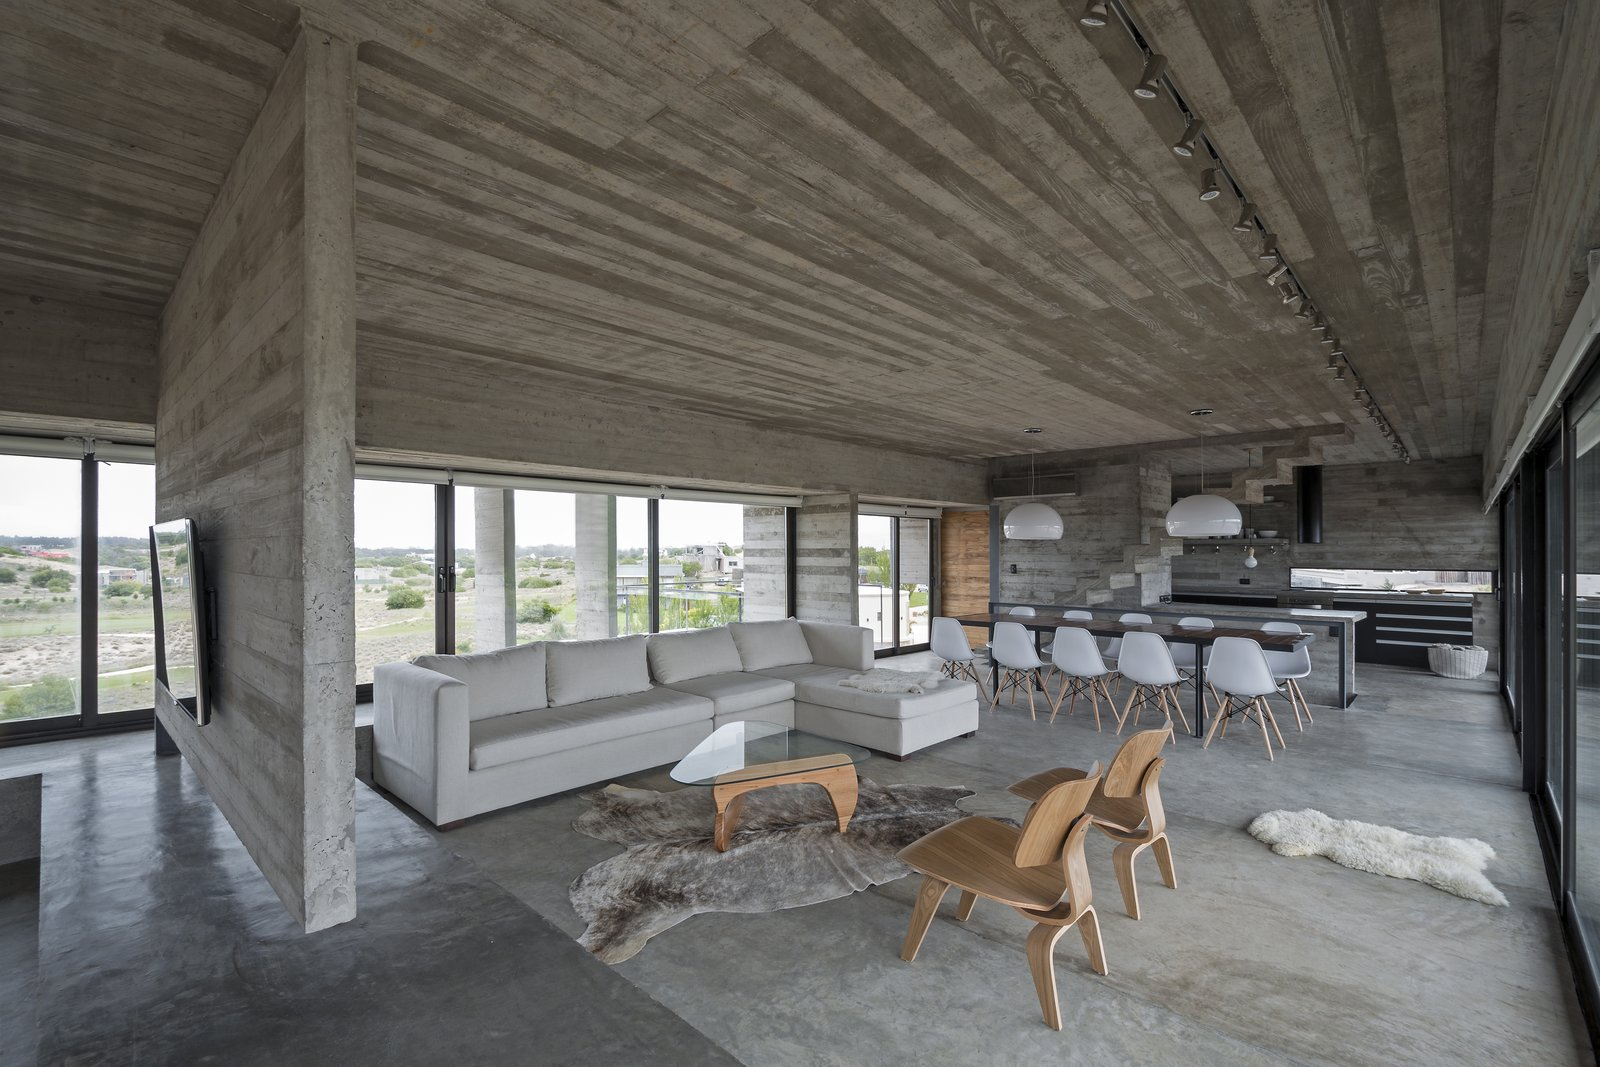 Elegant, cream and white colored sofa and chairs, and wood details compliment the raw concrete fitouts beautifully. Tagged: Living Room, Sectional, Concrete Floor, Chair, Coffee Tables, and Pendant Lighting.  Best Photos from This Stacked Concrete Home Is Not Your Typical Golf Course Dwelling